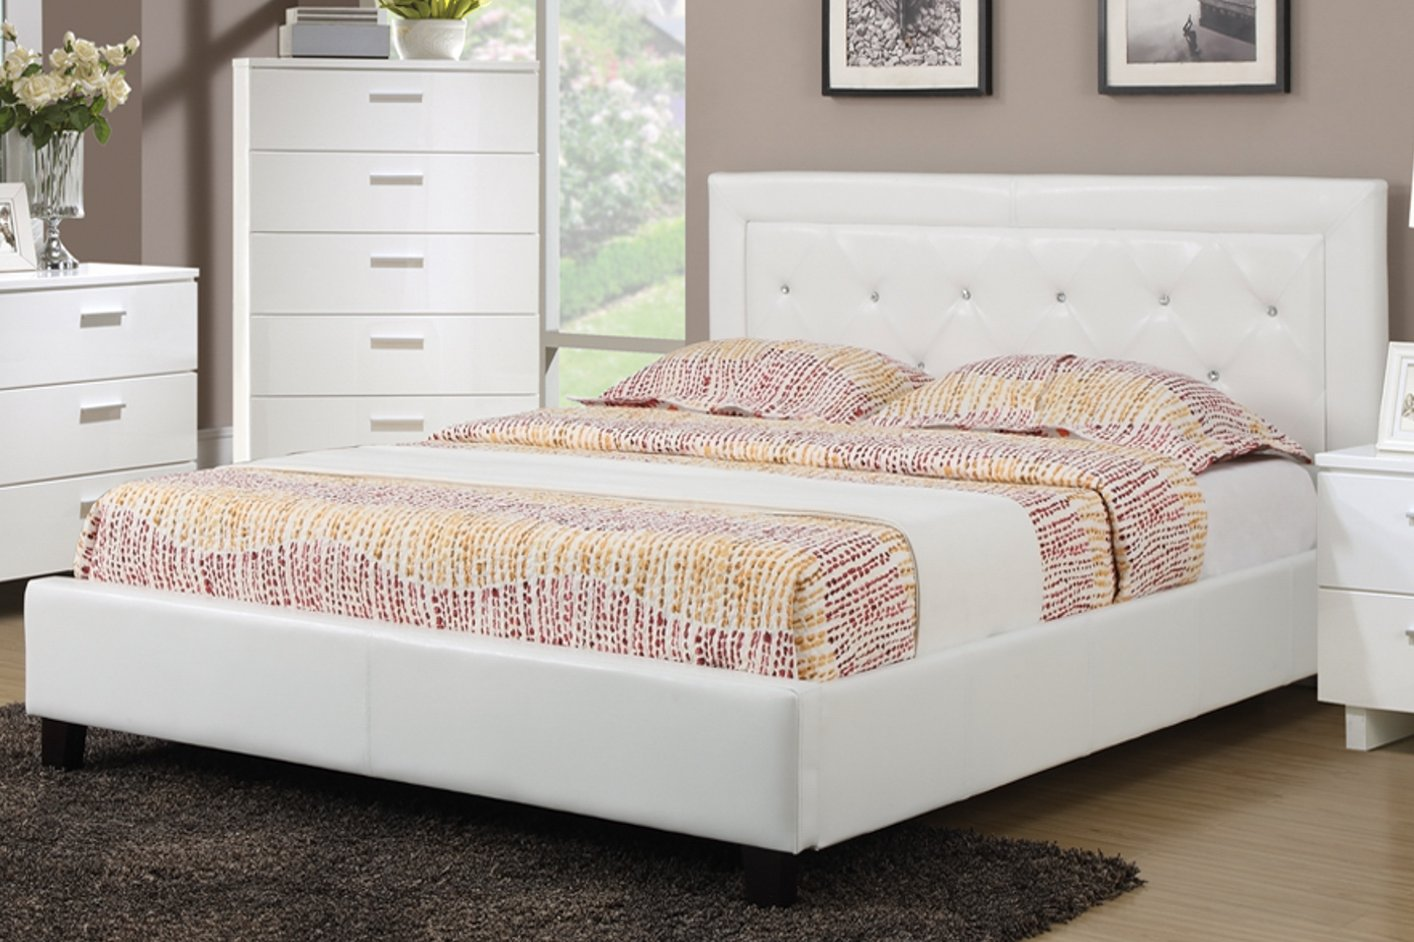 A full size bed is typically 15 inches wider than a twin bed, offering more room for a single sleeper to move around. This type of mattress is a safe choice for a guest room because it can accommodate two people or provide a larger sleeping surface for one person.